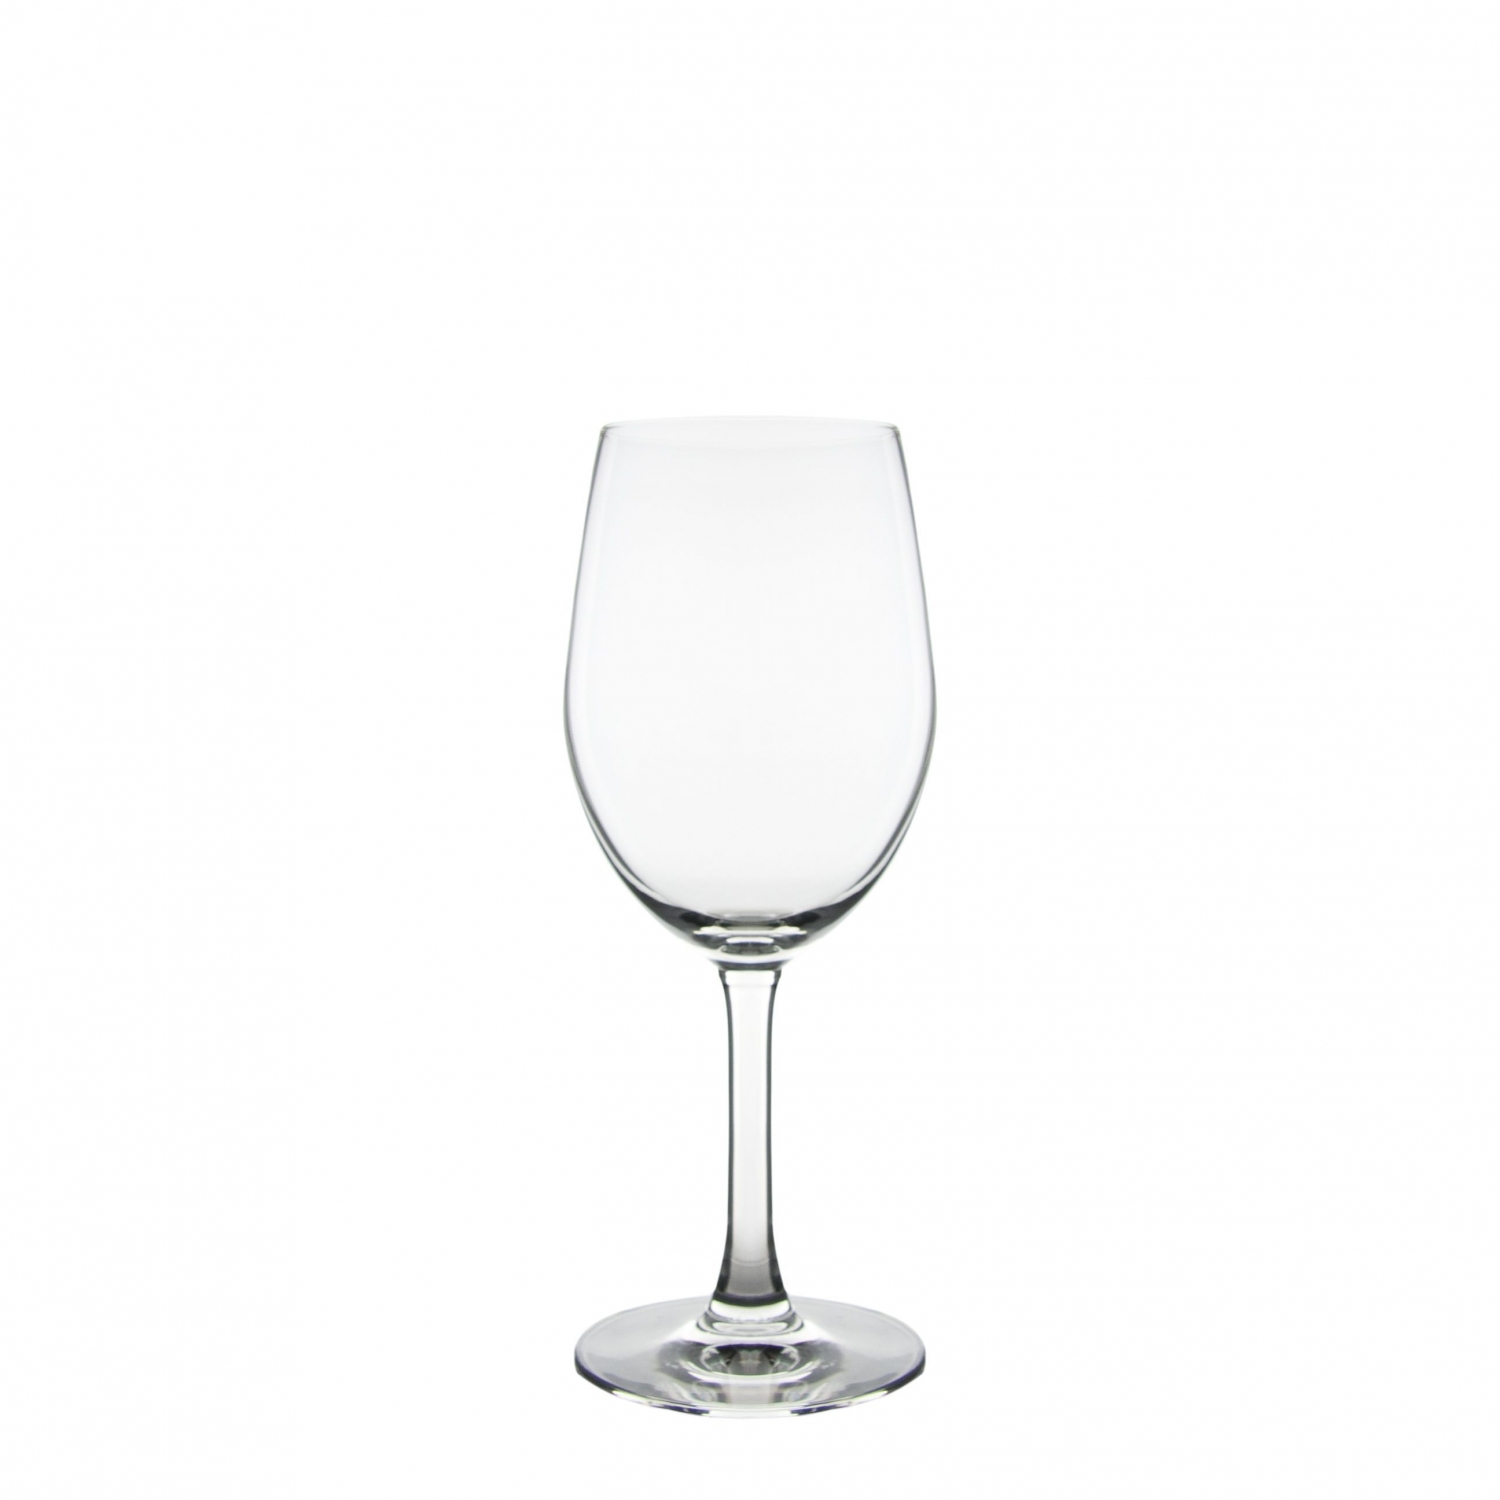 10 Strawberry Street BALI-WW 13 oz. Bali White Wine Glass - 24 pcs